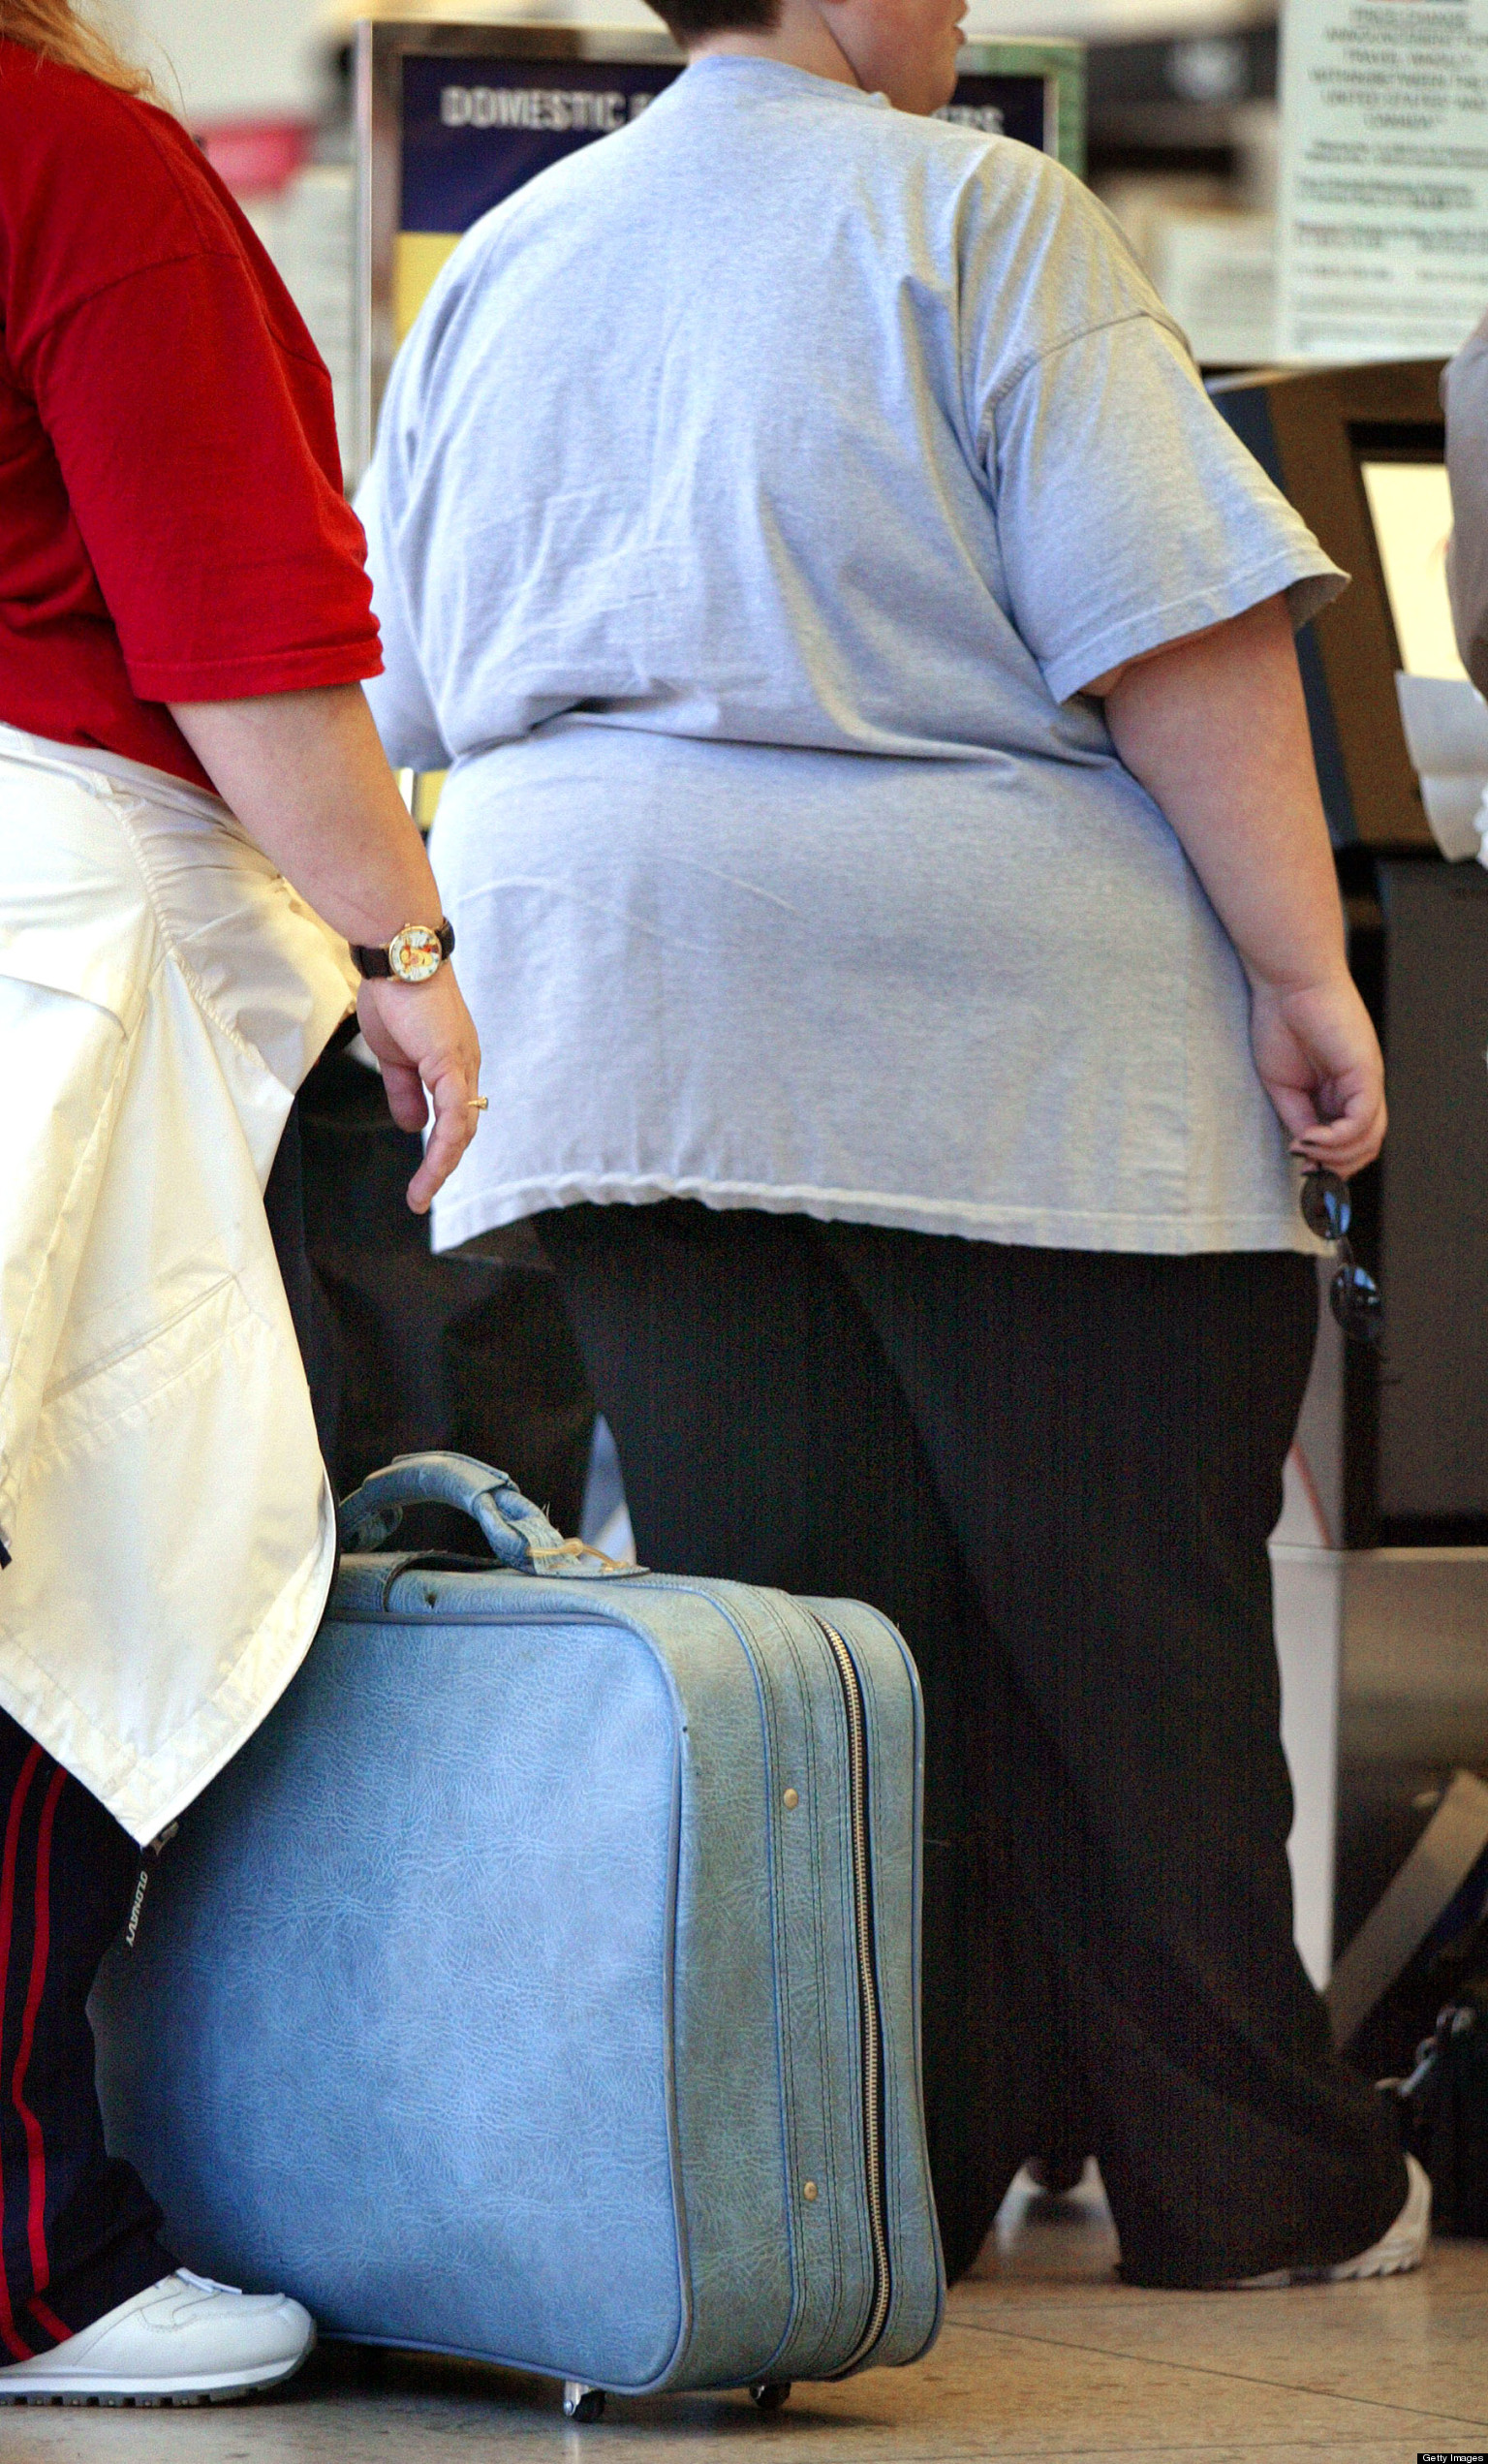 should obese people pay more for Cost sharing is appropriate but there should also be consequences for things under your control.